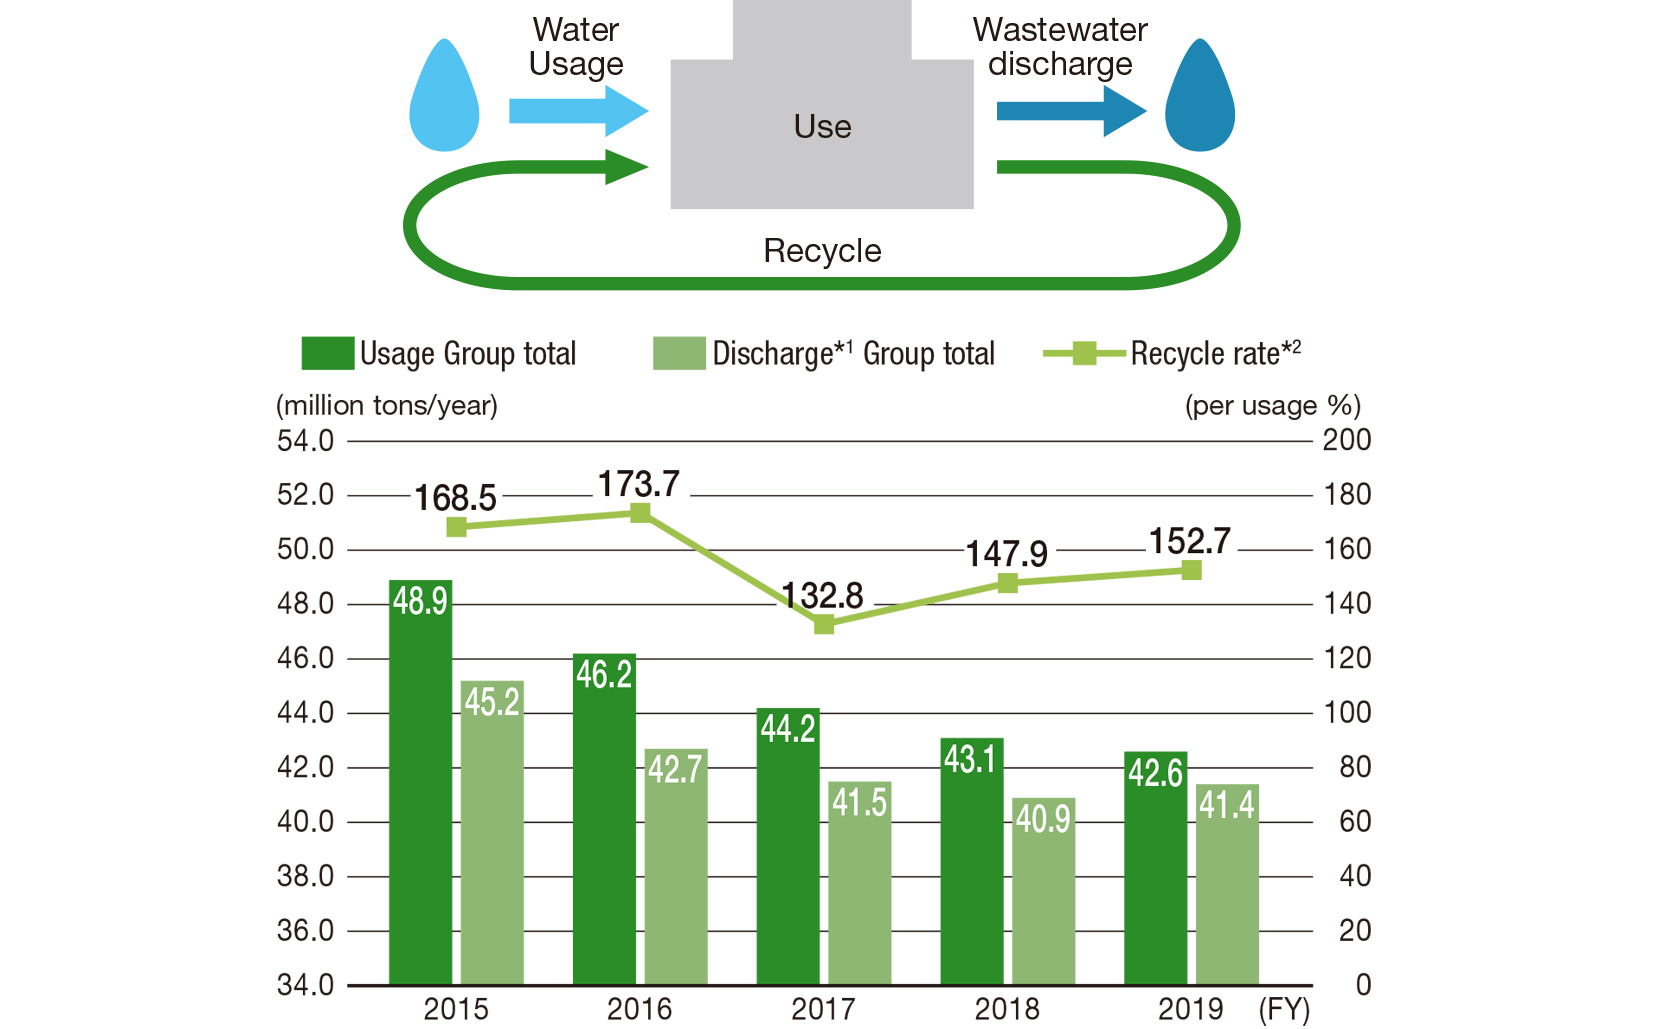 [Figure]Annual Trend in Water Usage, Recycling and Discharge as Wastewater